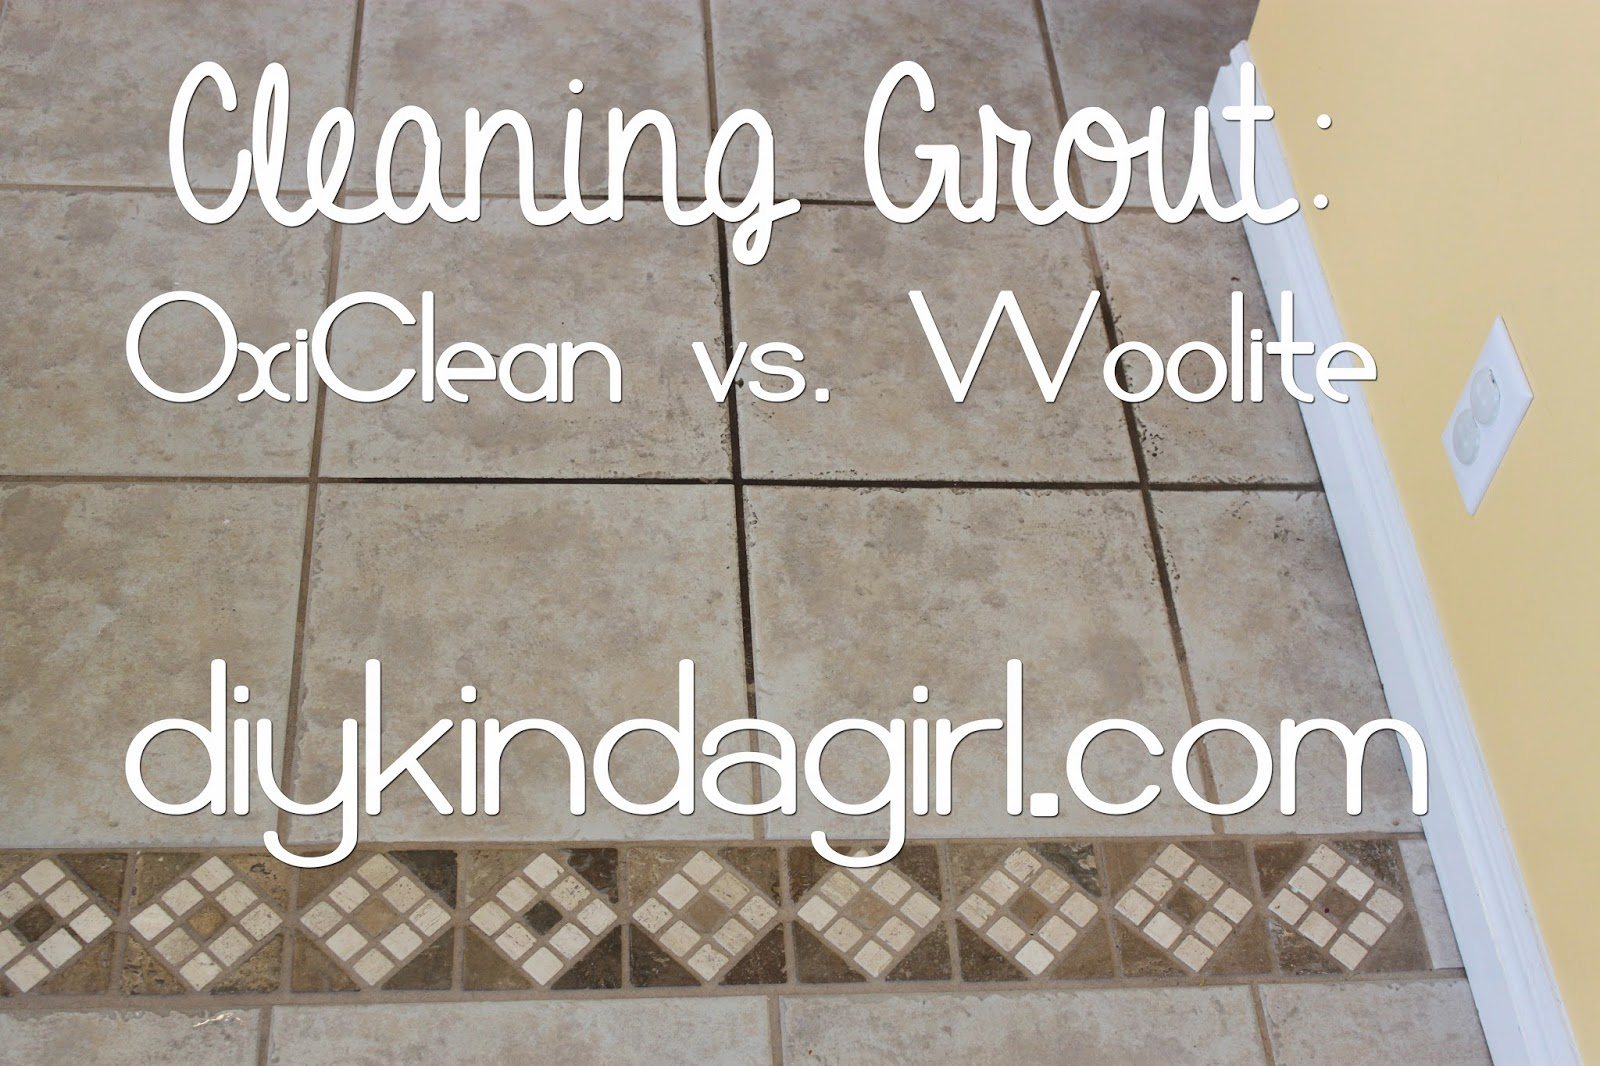 Diy kinda girl diy household tip cleaning grout oxiclean vs diy household tip cleaning grout oxiclean vs woolite dailygadgetfo Images